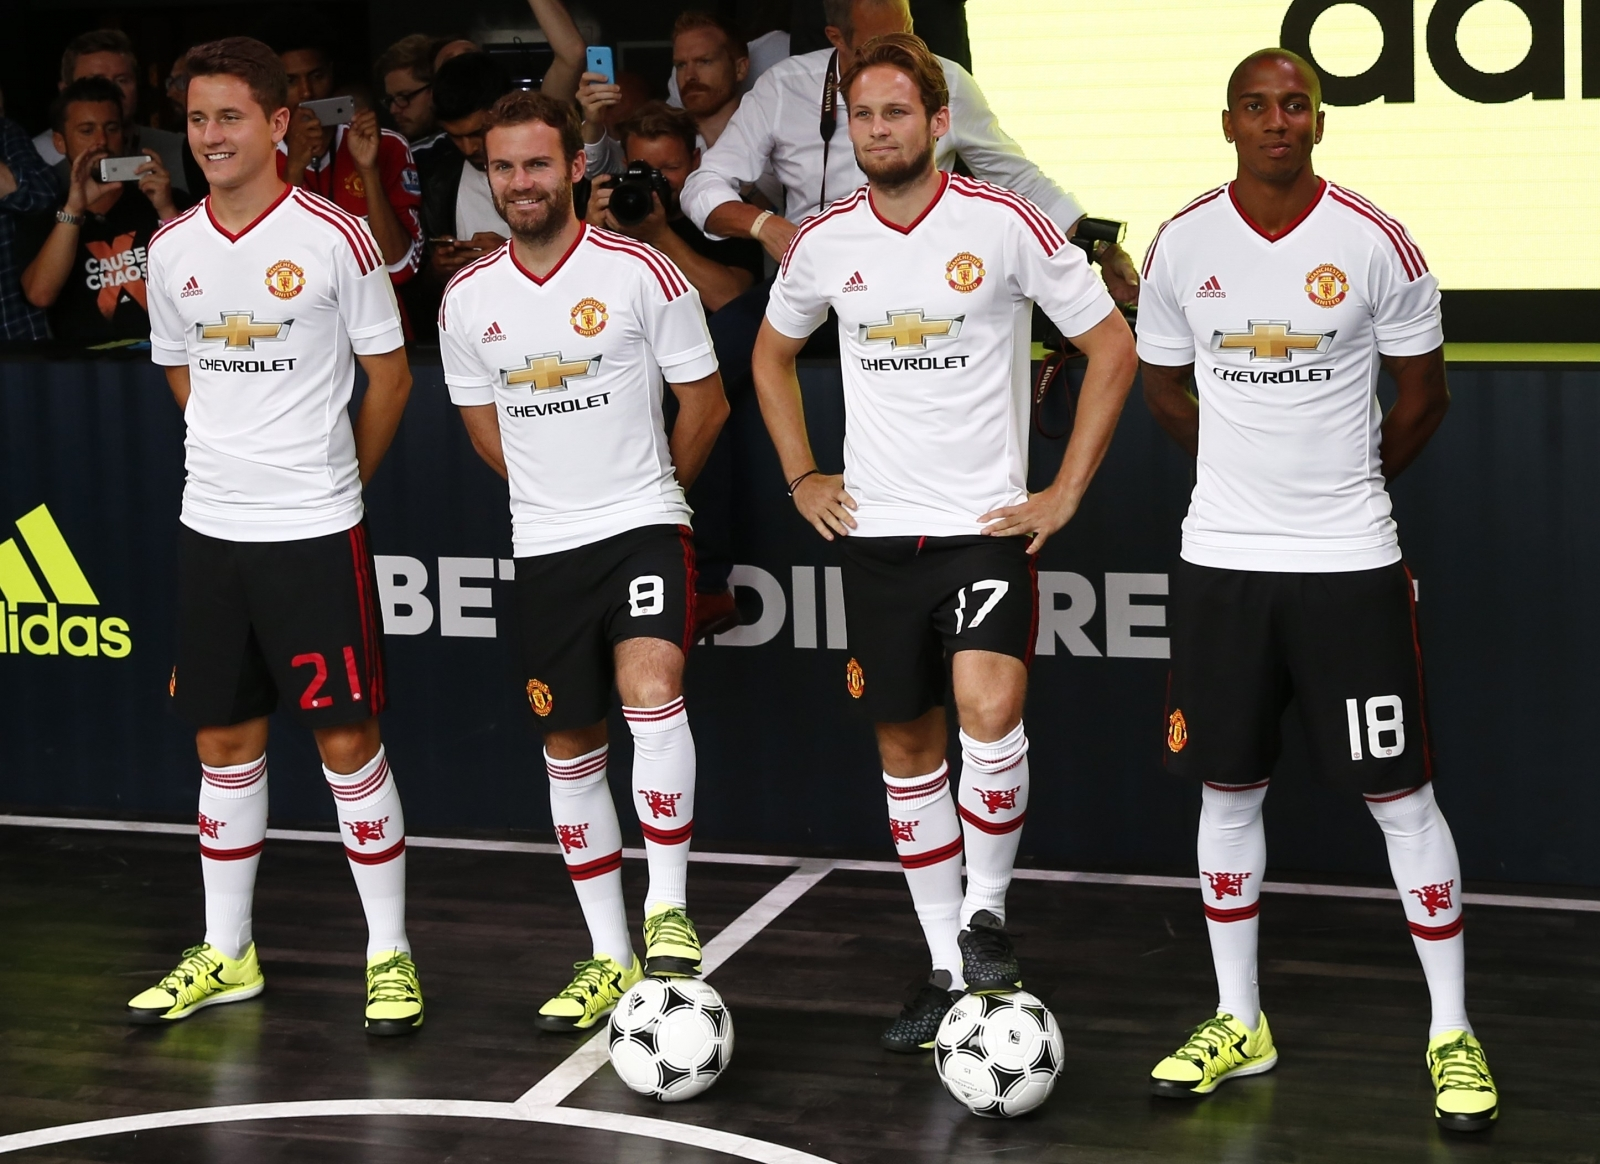 Ander Herrera, Juan Mata, Daley Blind and Ashley Young